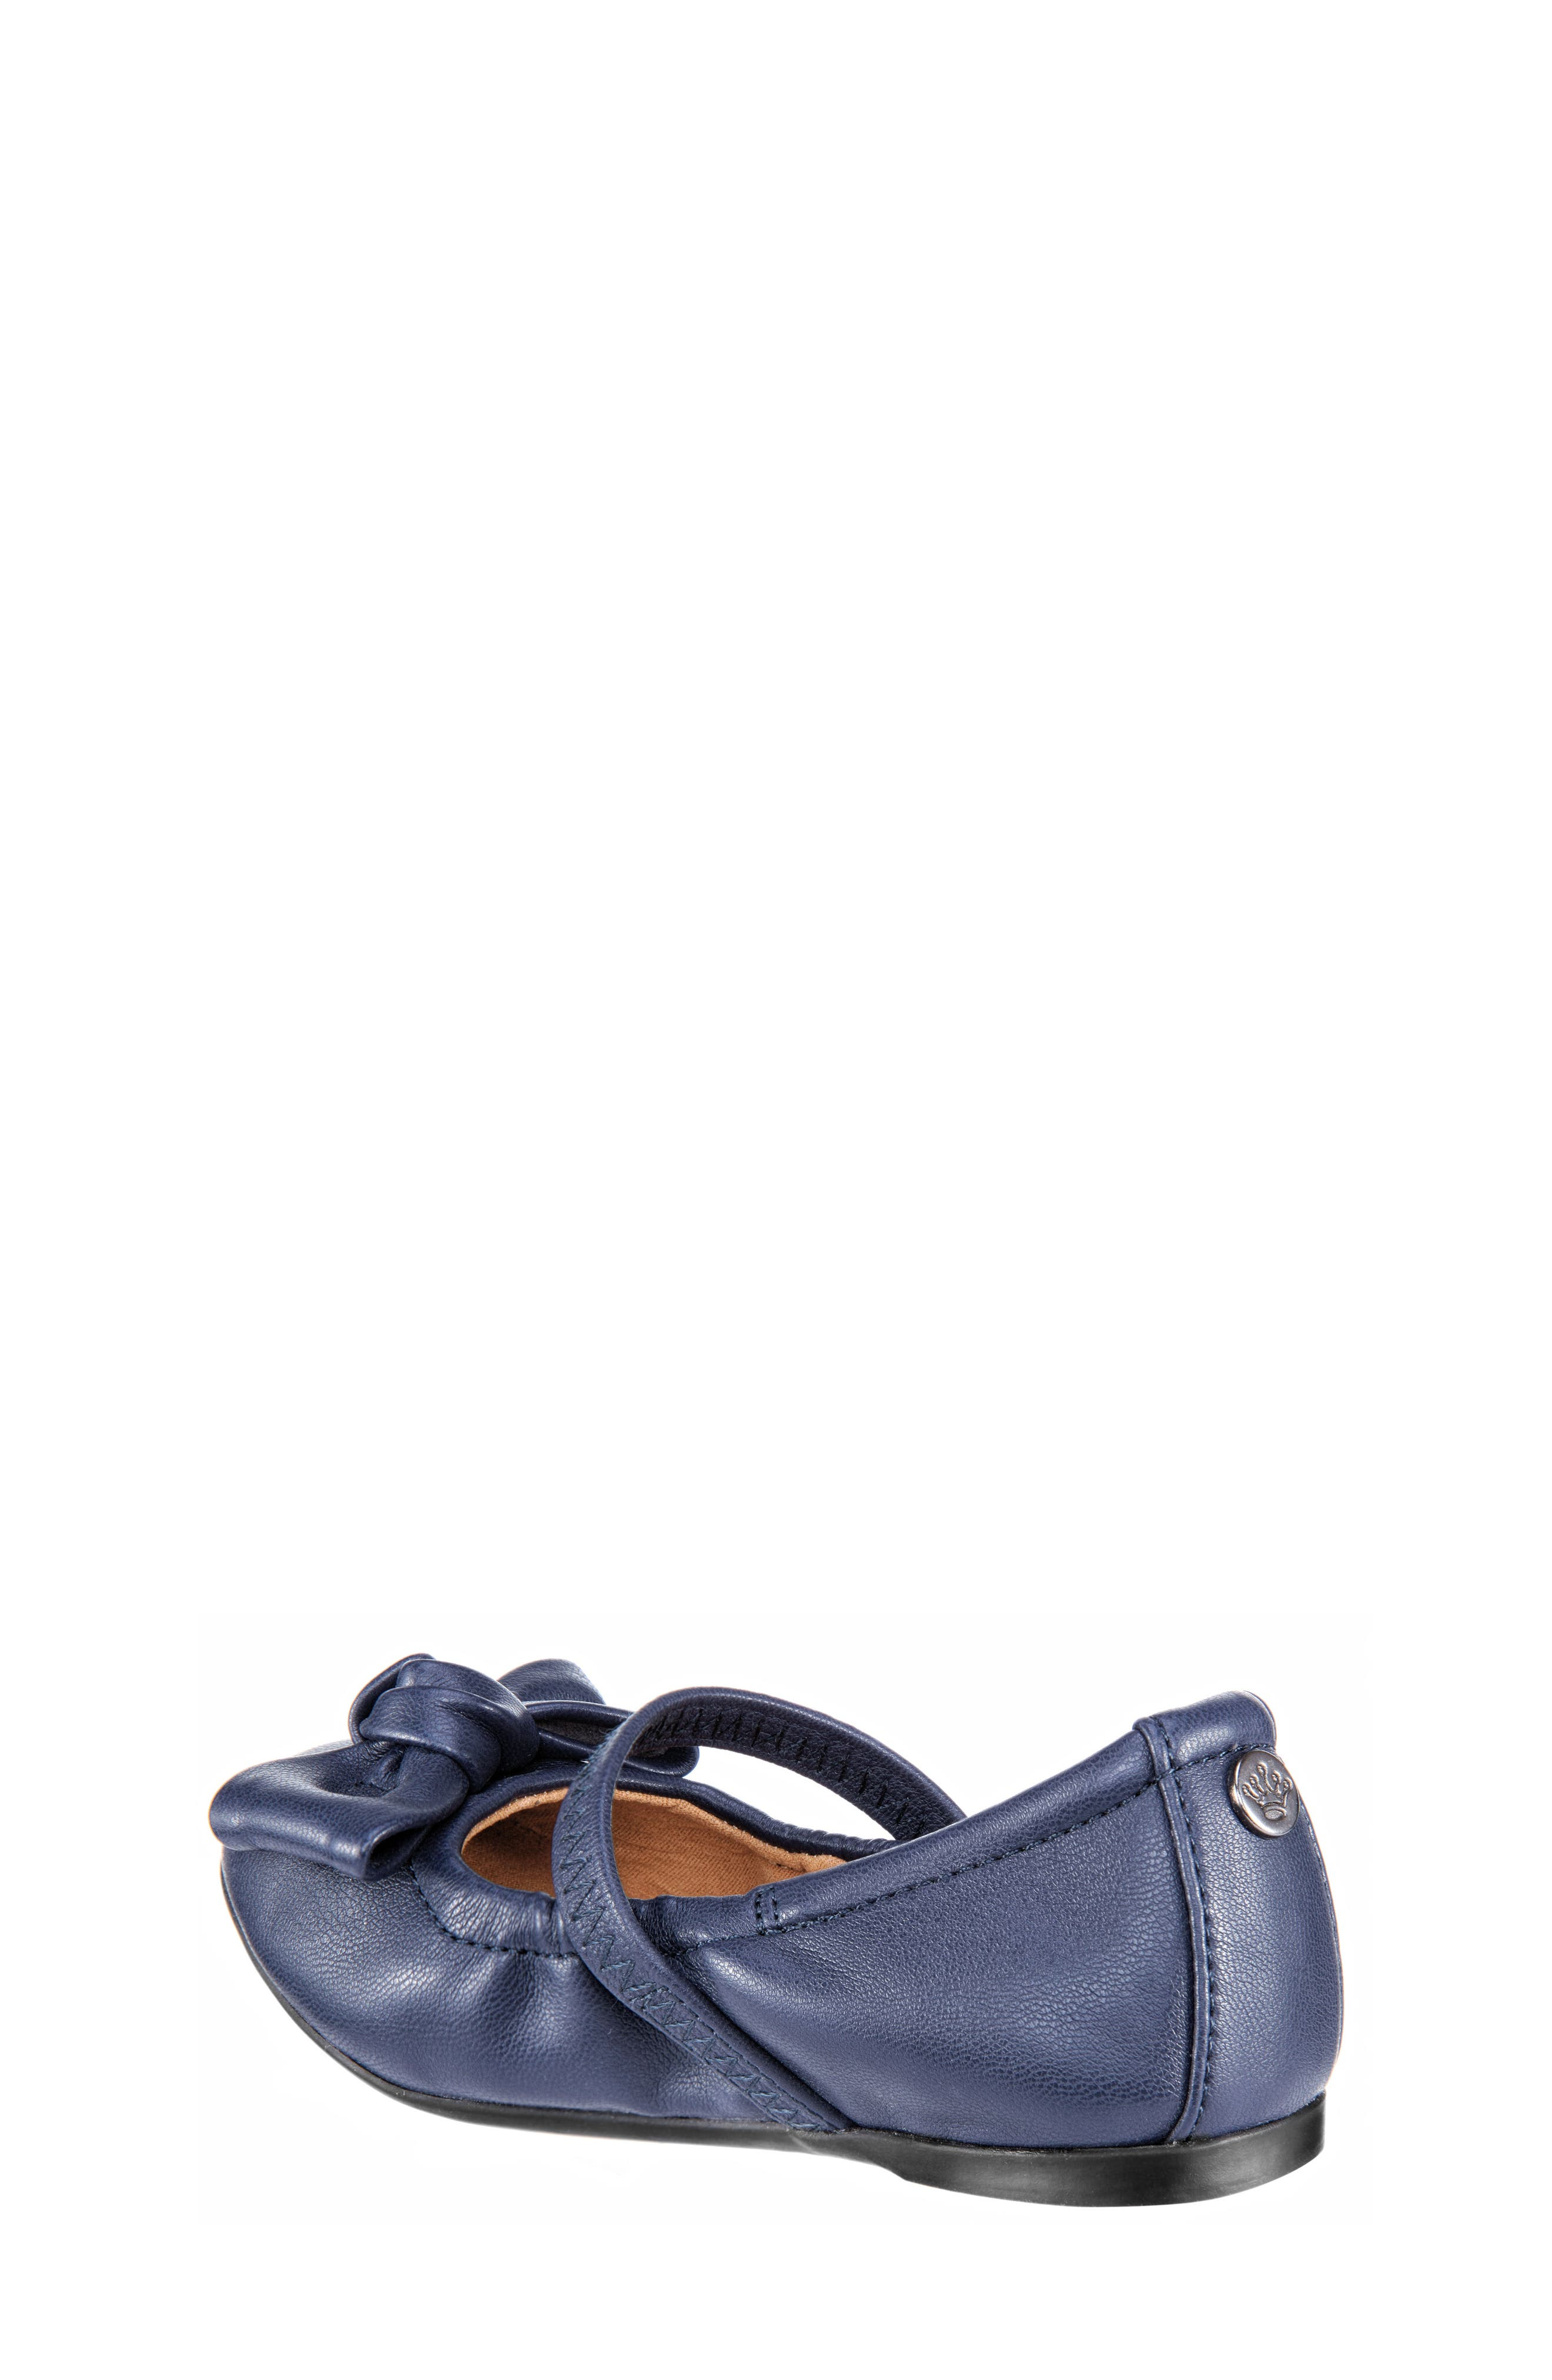 Karla Bow Ballet Flat,                             Alternate thumbnail 2, color,                             Navy Smooth Blue